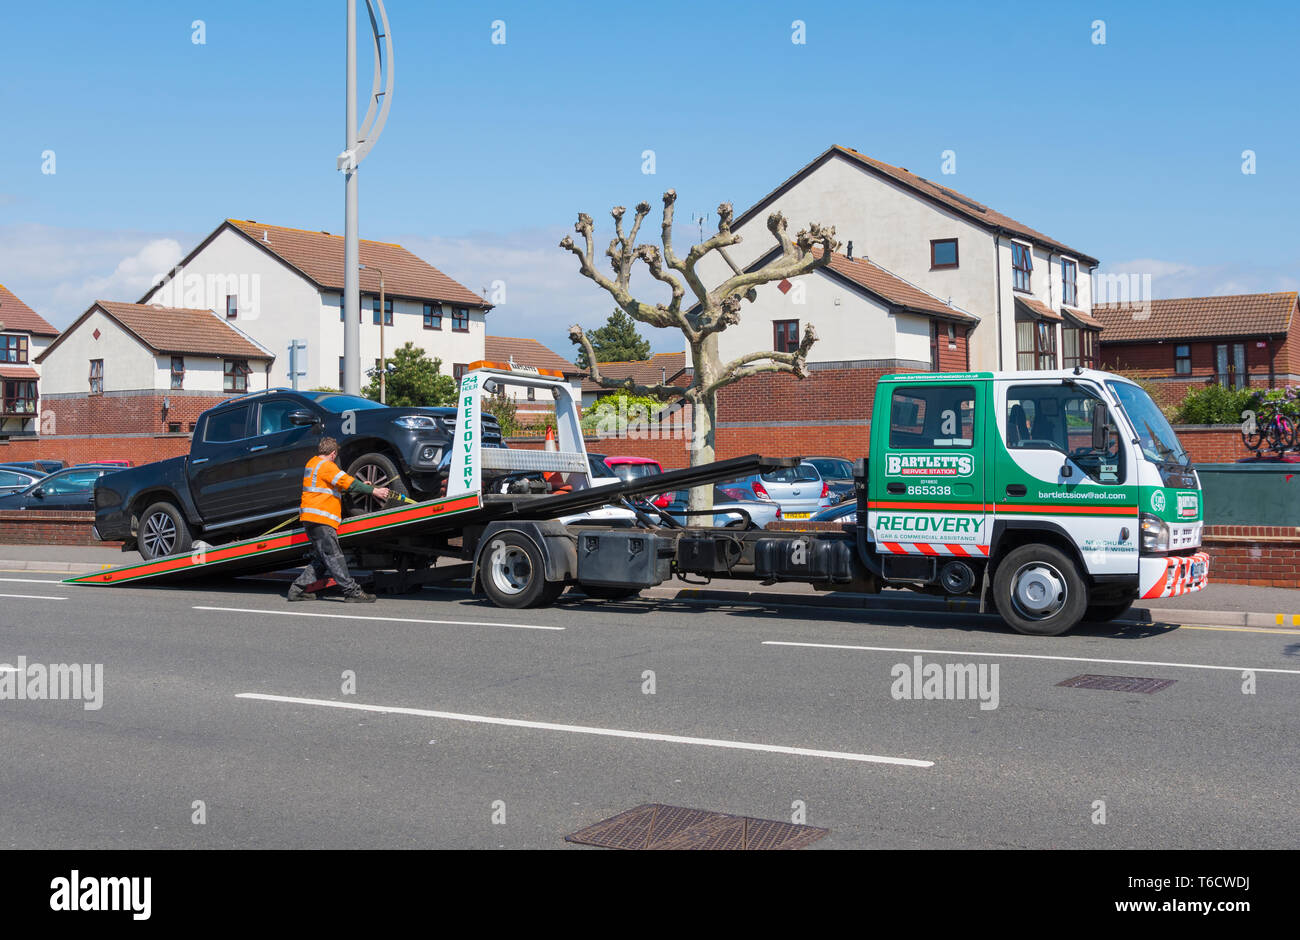 Bartletts breakdown recovery vehicle at the roadside putting a car on a trailer, in the UK. - Stock Image